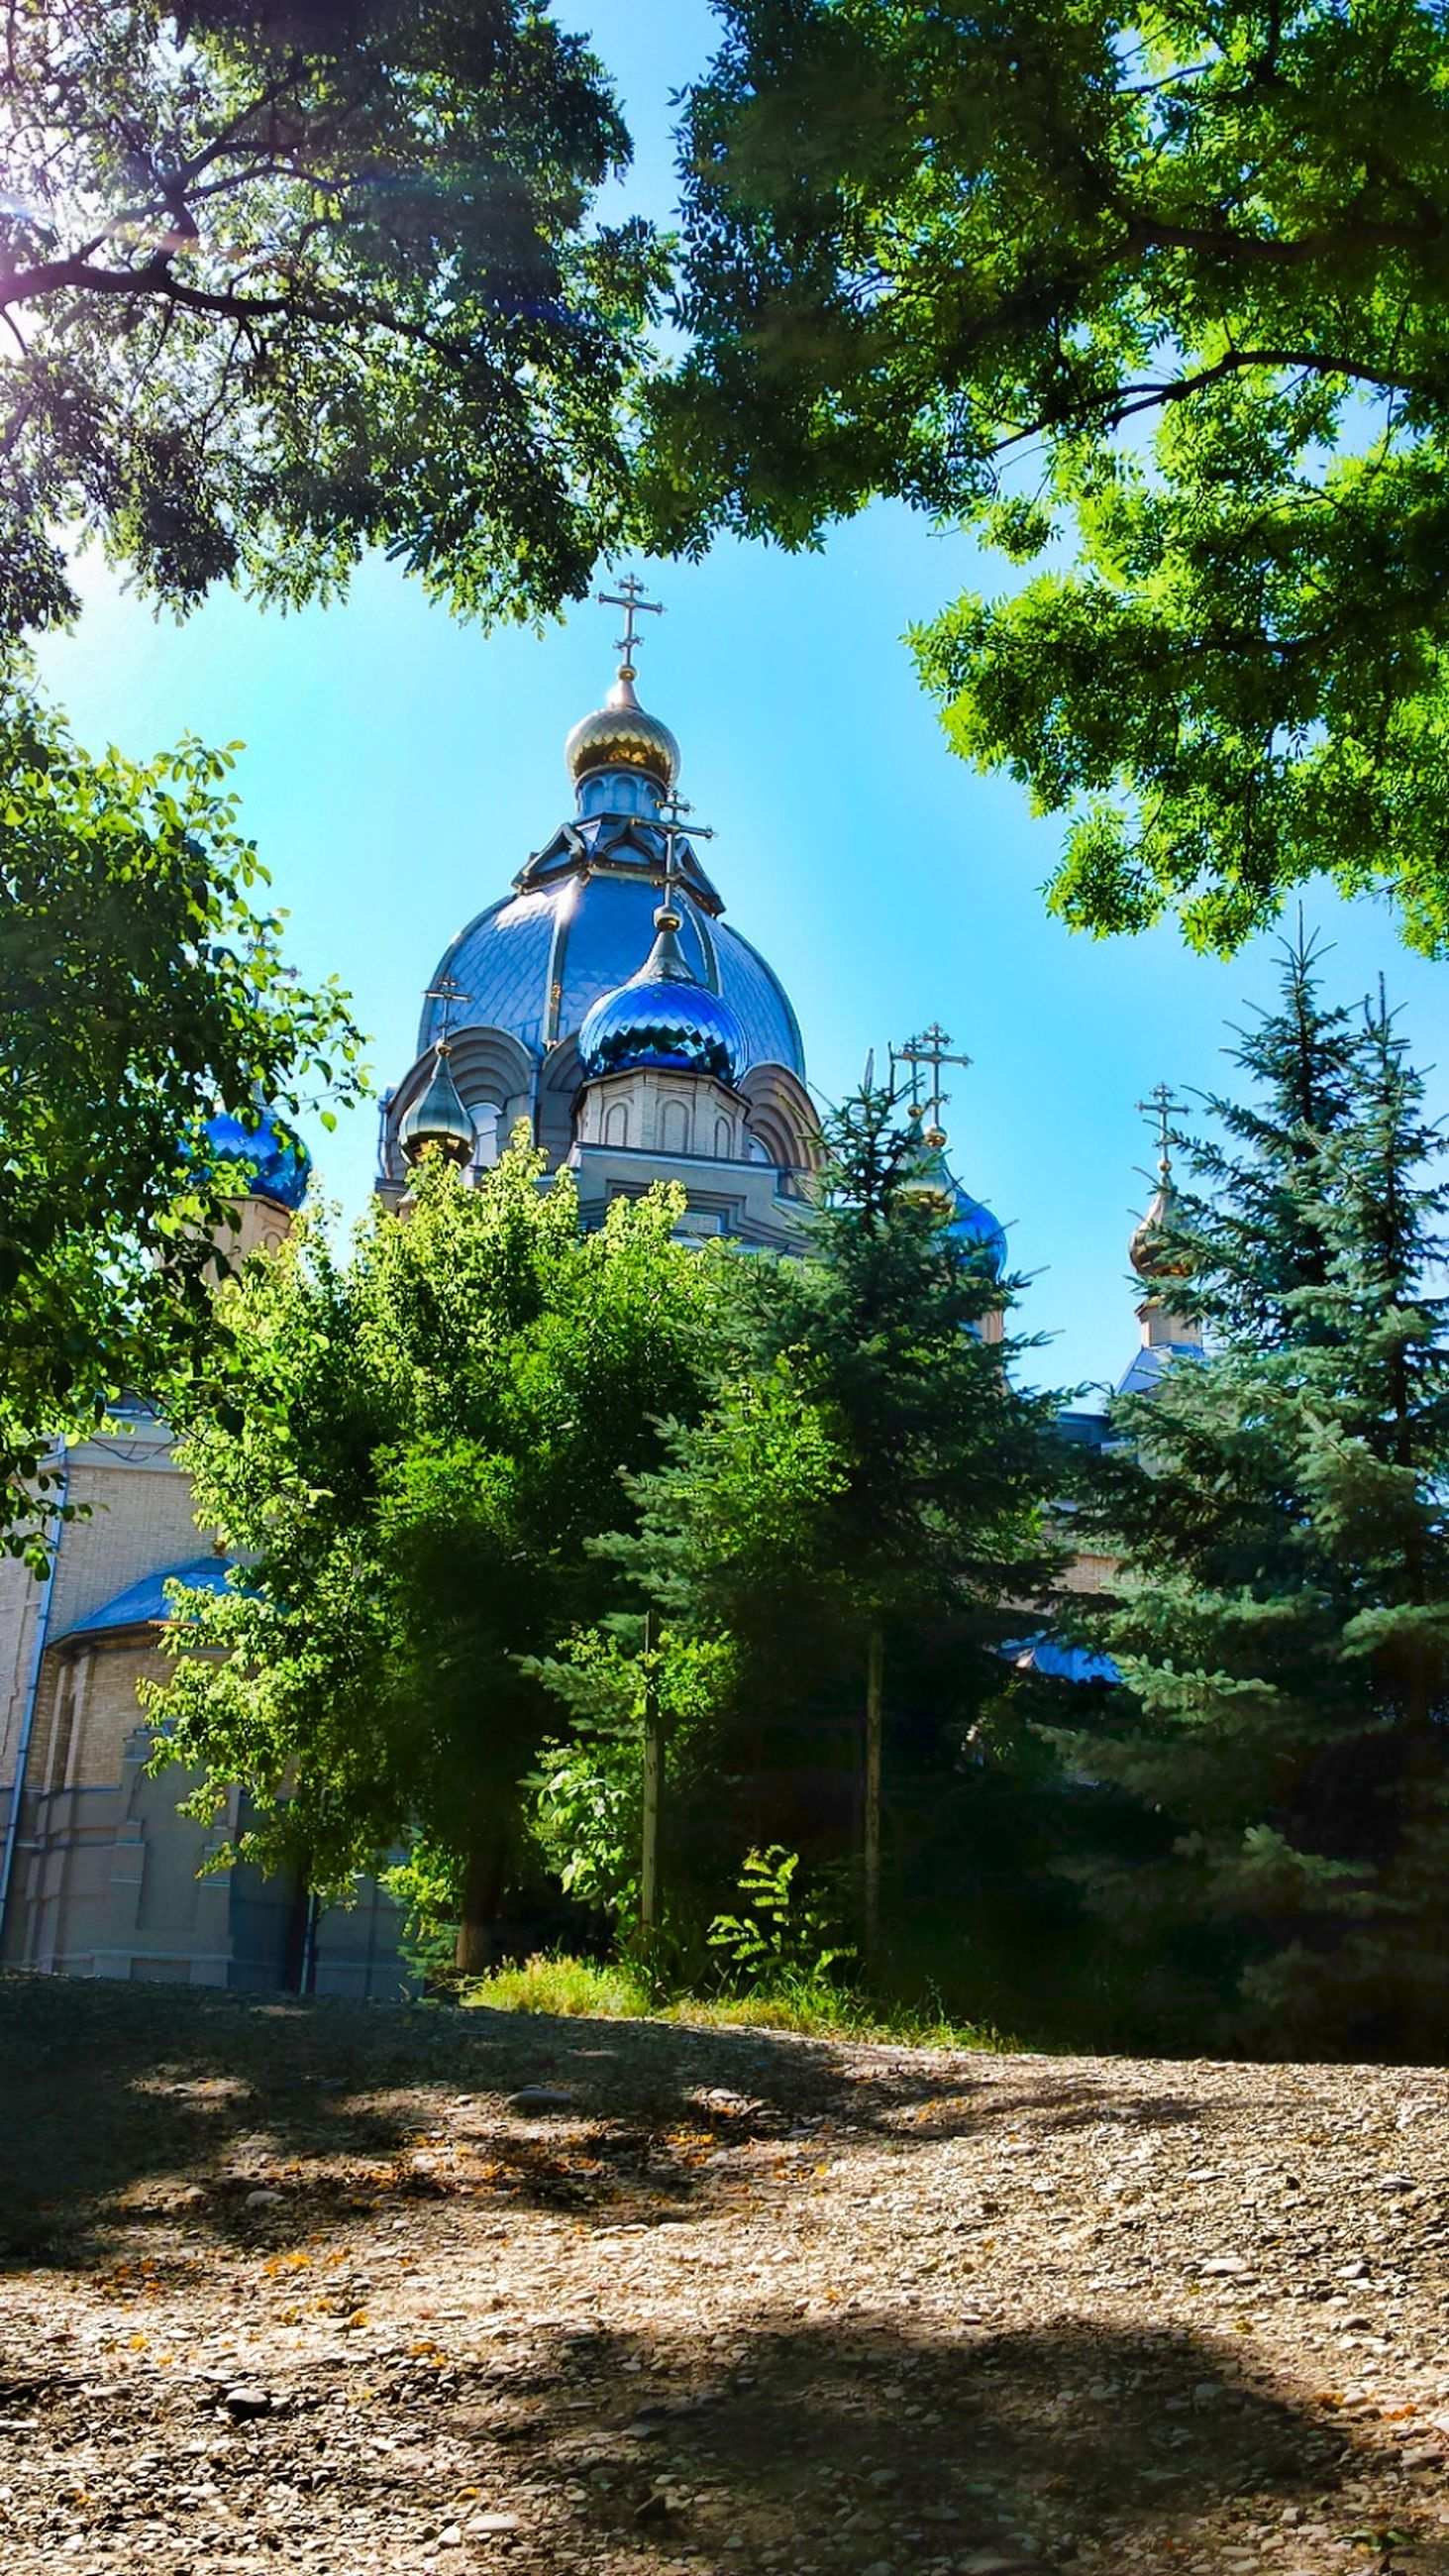 tree, built structure, architecture, building exterior, religion, place of worship, spirituality, church, growth, dome, clear sky, green color, sunlight, low angle view, branch, day, blue, sky